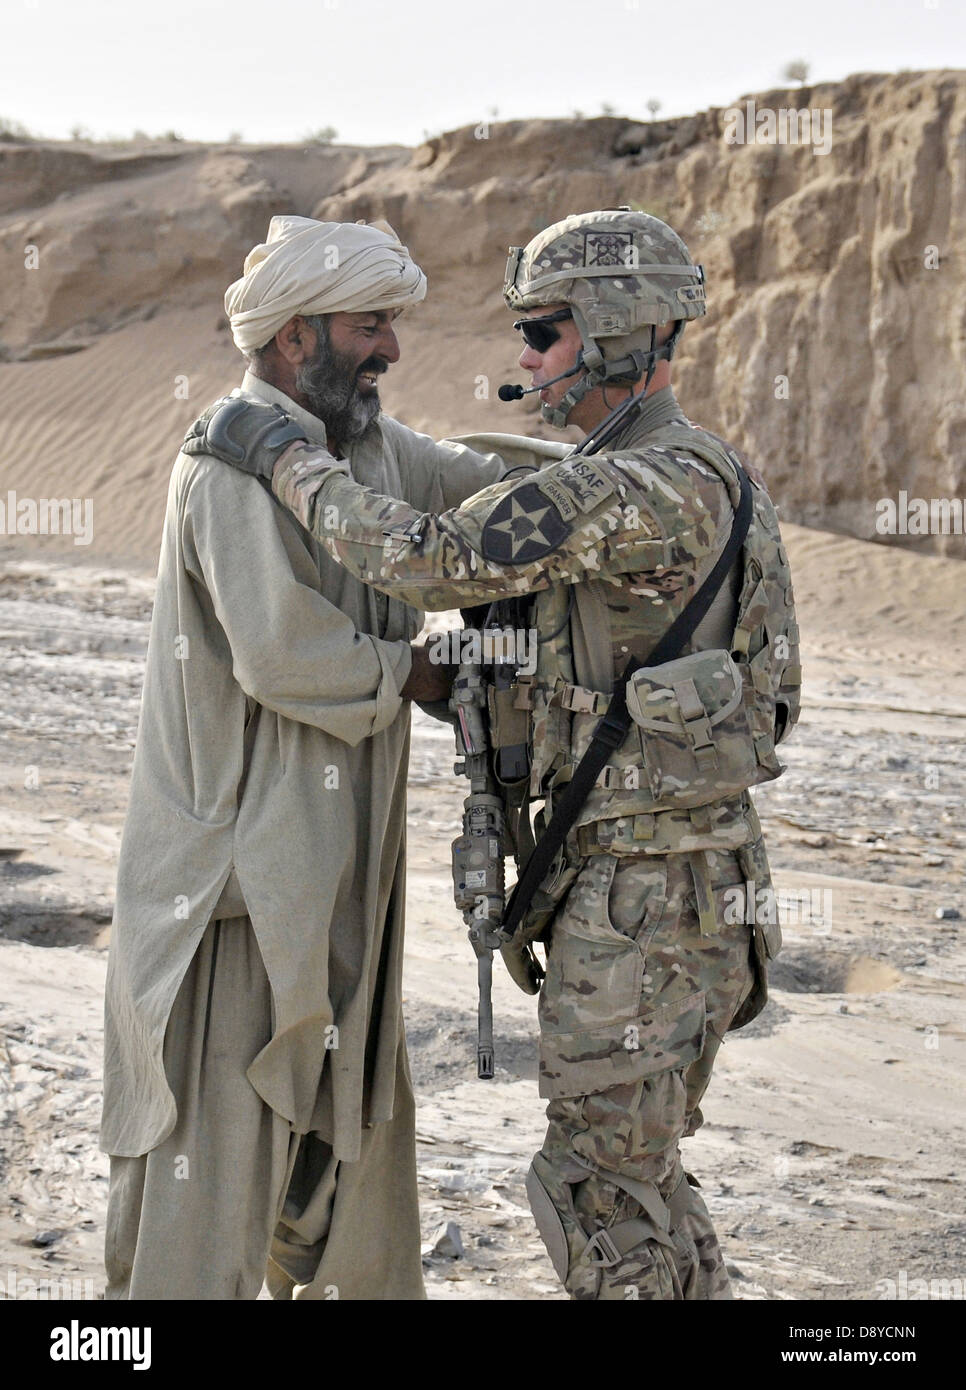 US Army Capt. Troy Yoho exchanges greetings with an Afghan farmer while his unit conducts a dismounted patrol June - Stock Image